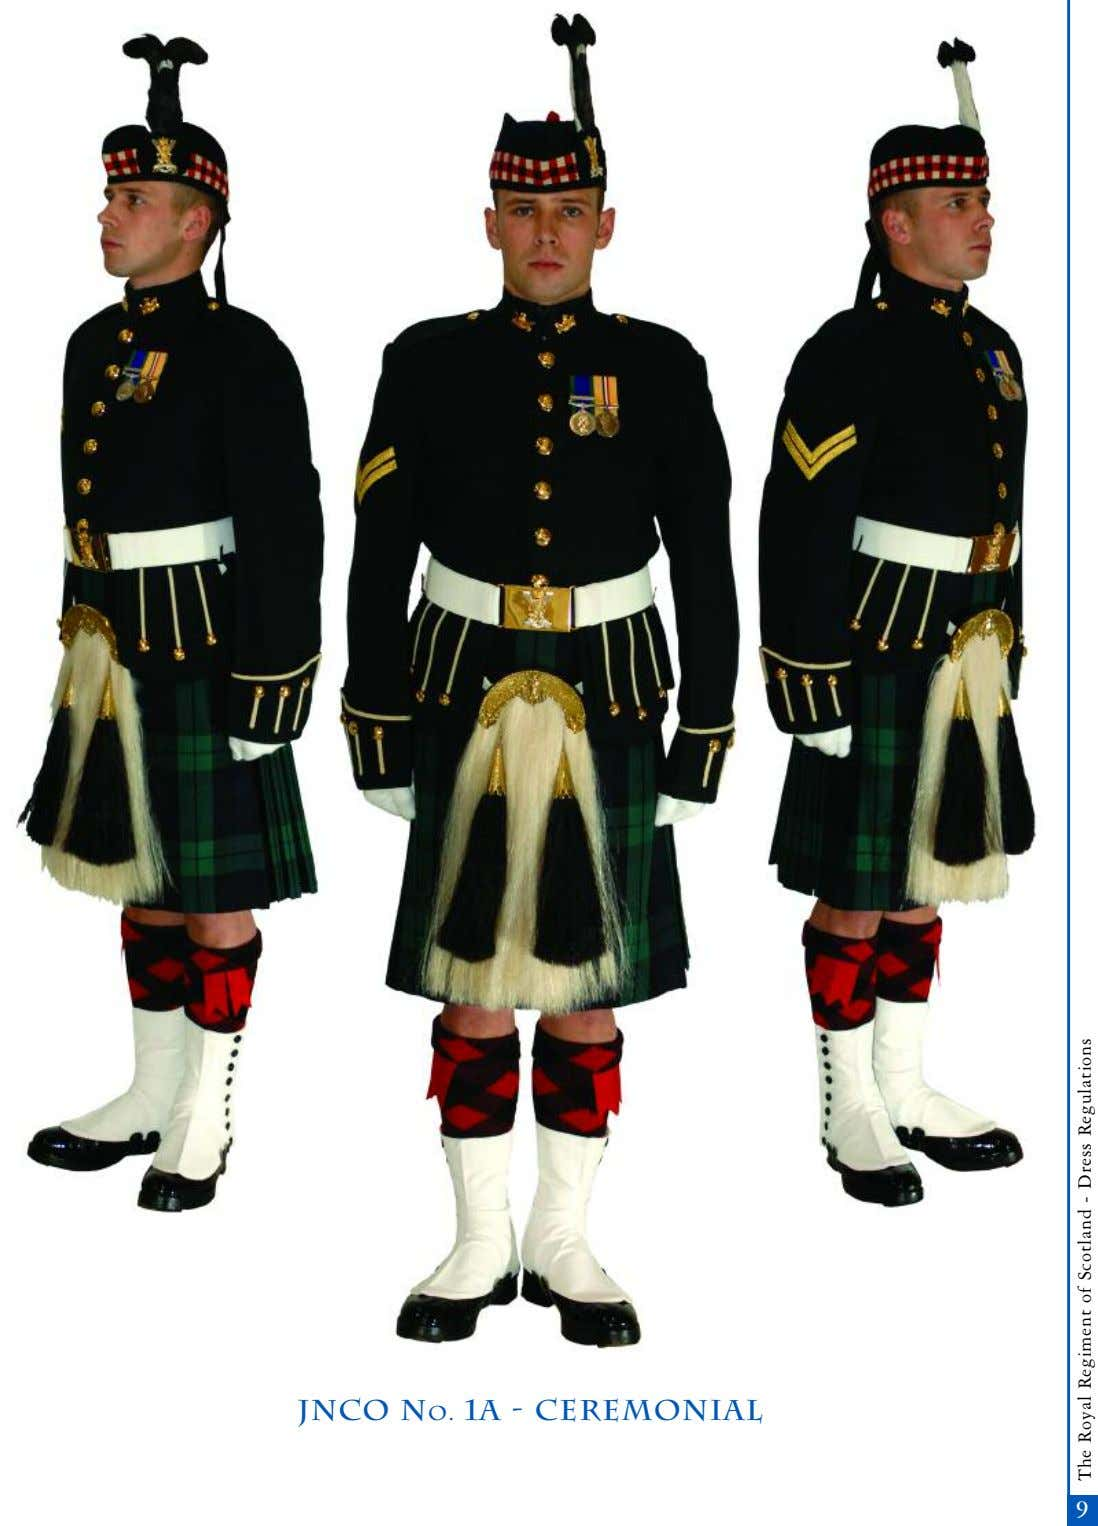 JNCO No. 1A - Ceremonial 9 The Royal Regiment of Scotland - Dress Regulations